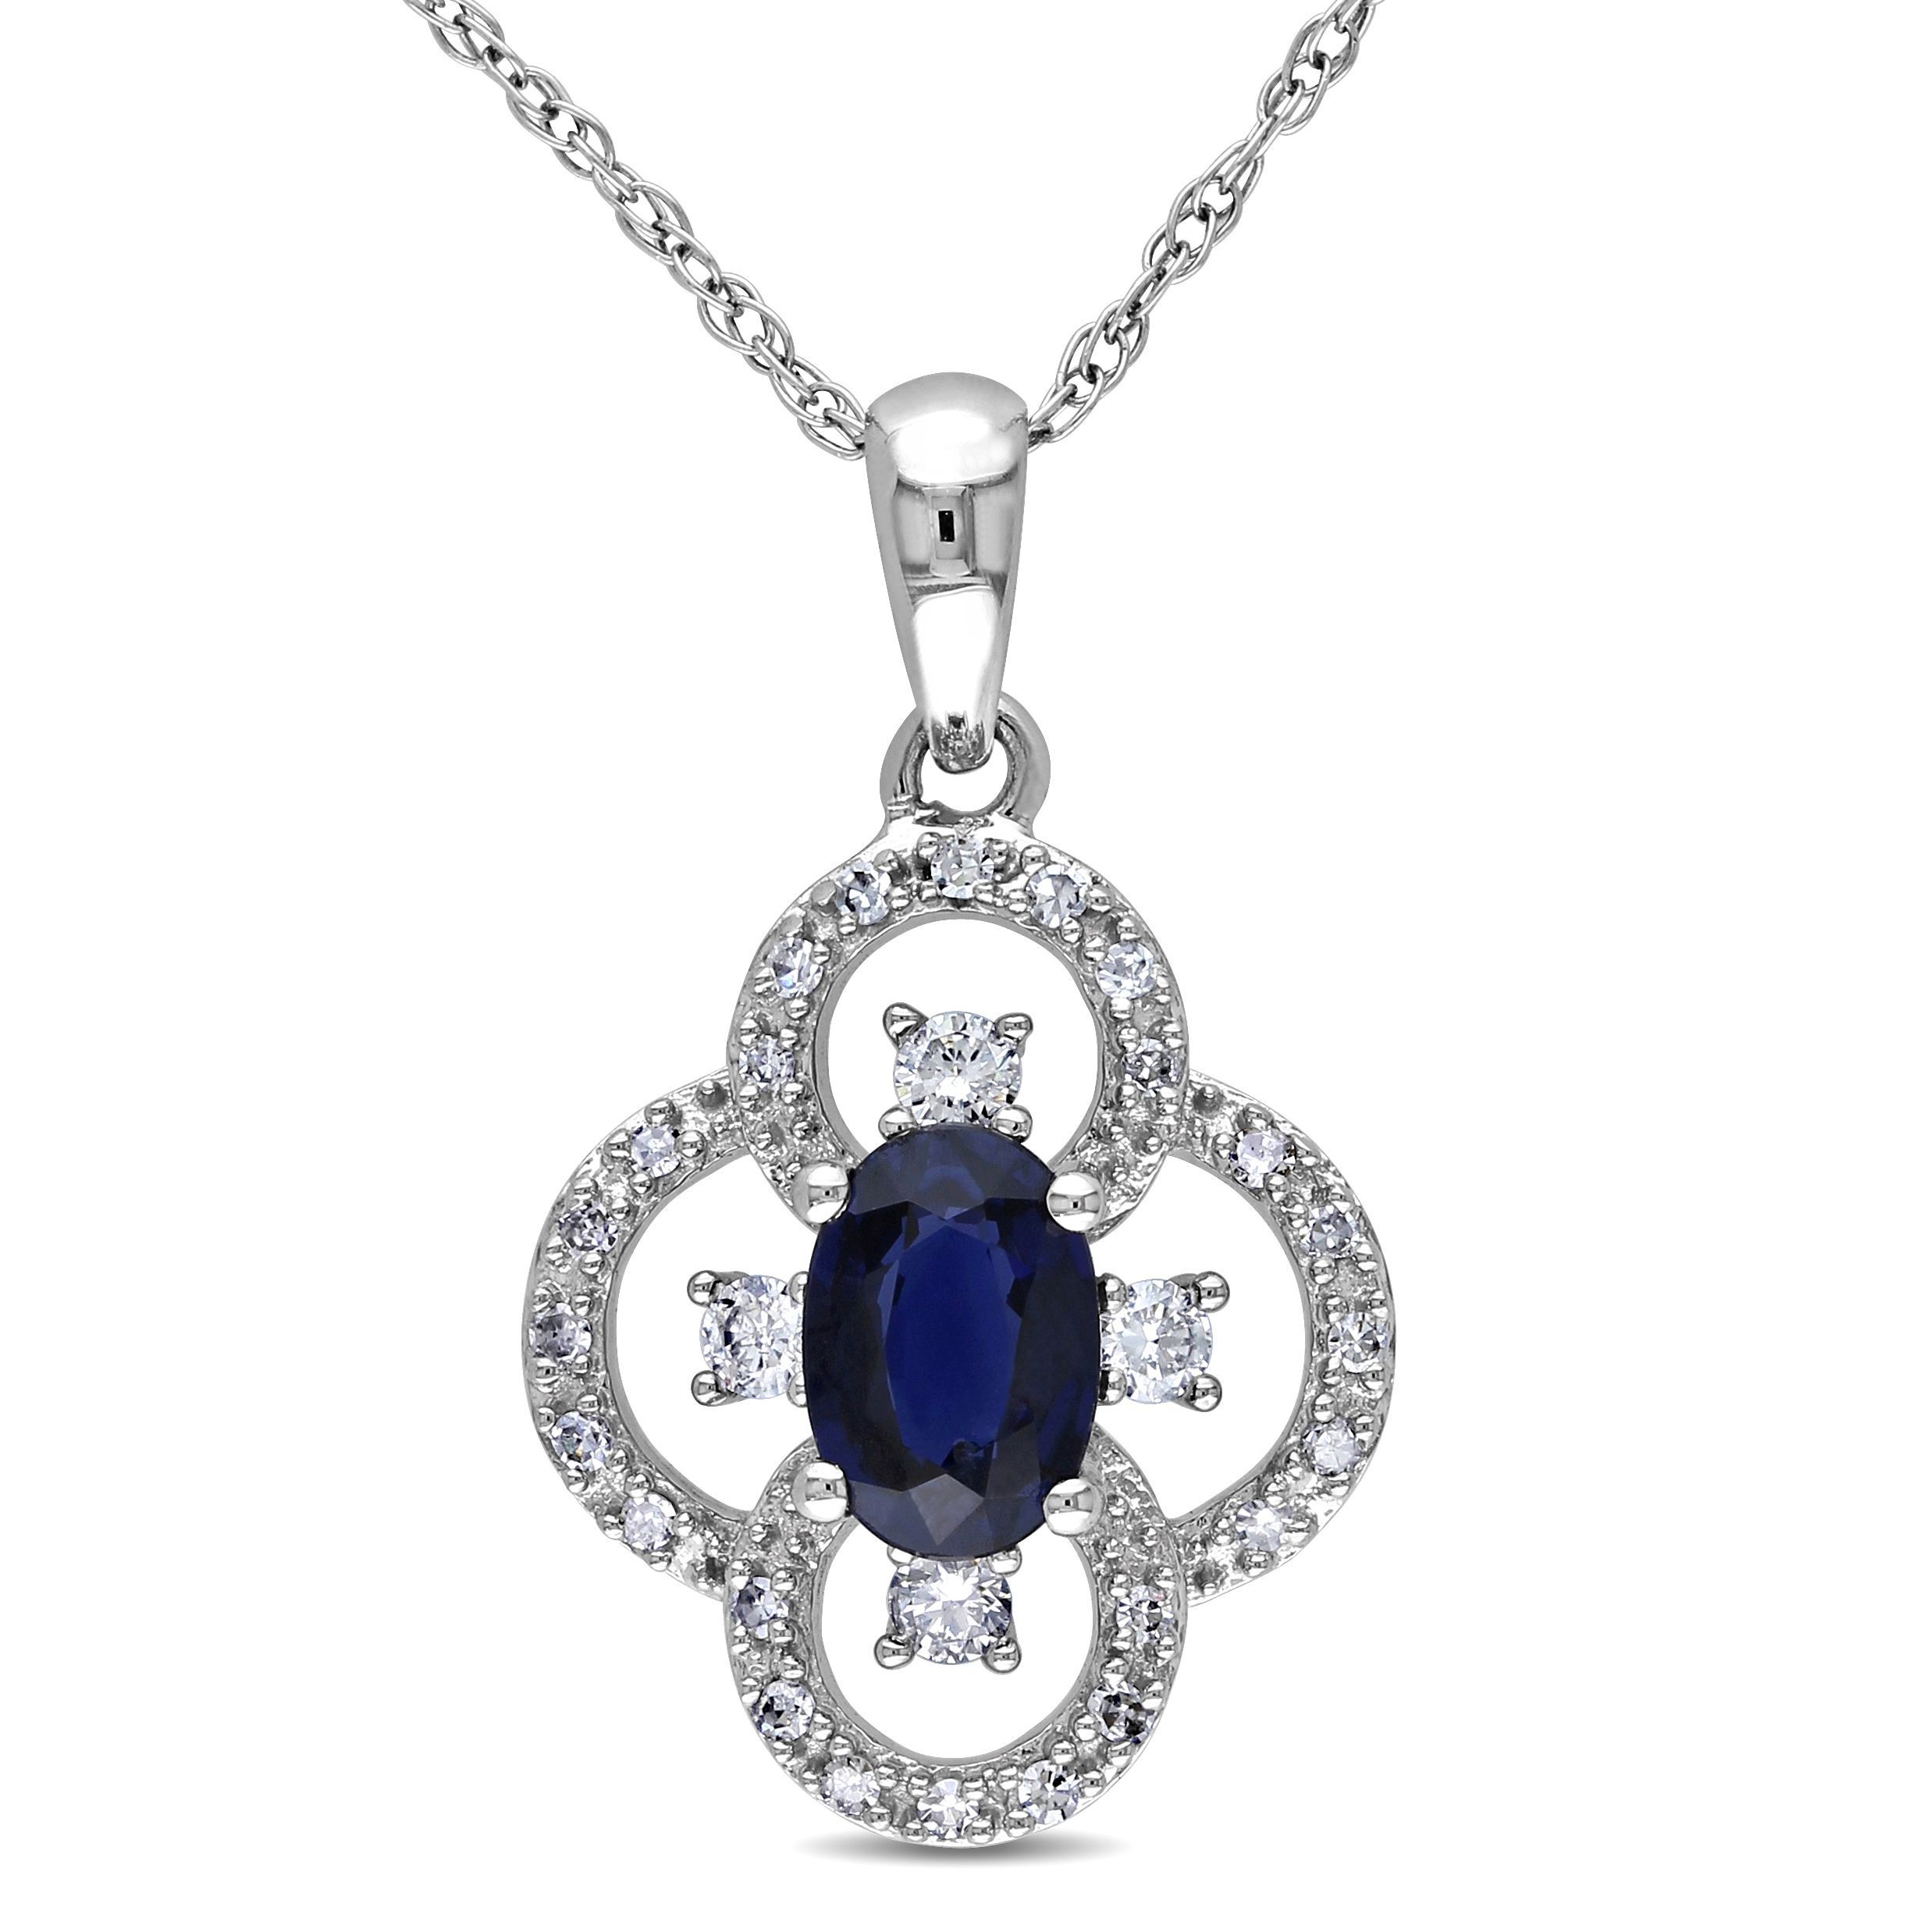 This lovely necklace from the miadora gemstones collection this lovely necklace from the miadora gemstones collection features an oval cut sapphire surrounded by a clover shape of white diamonds aloadofball Image collections